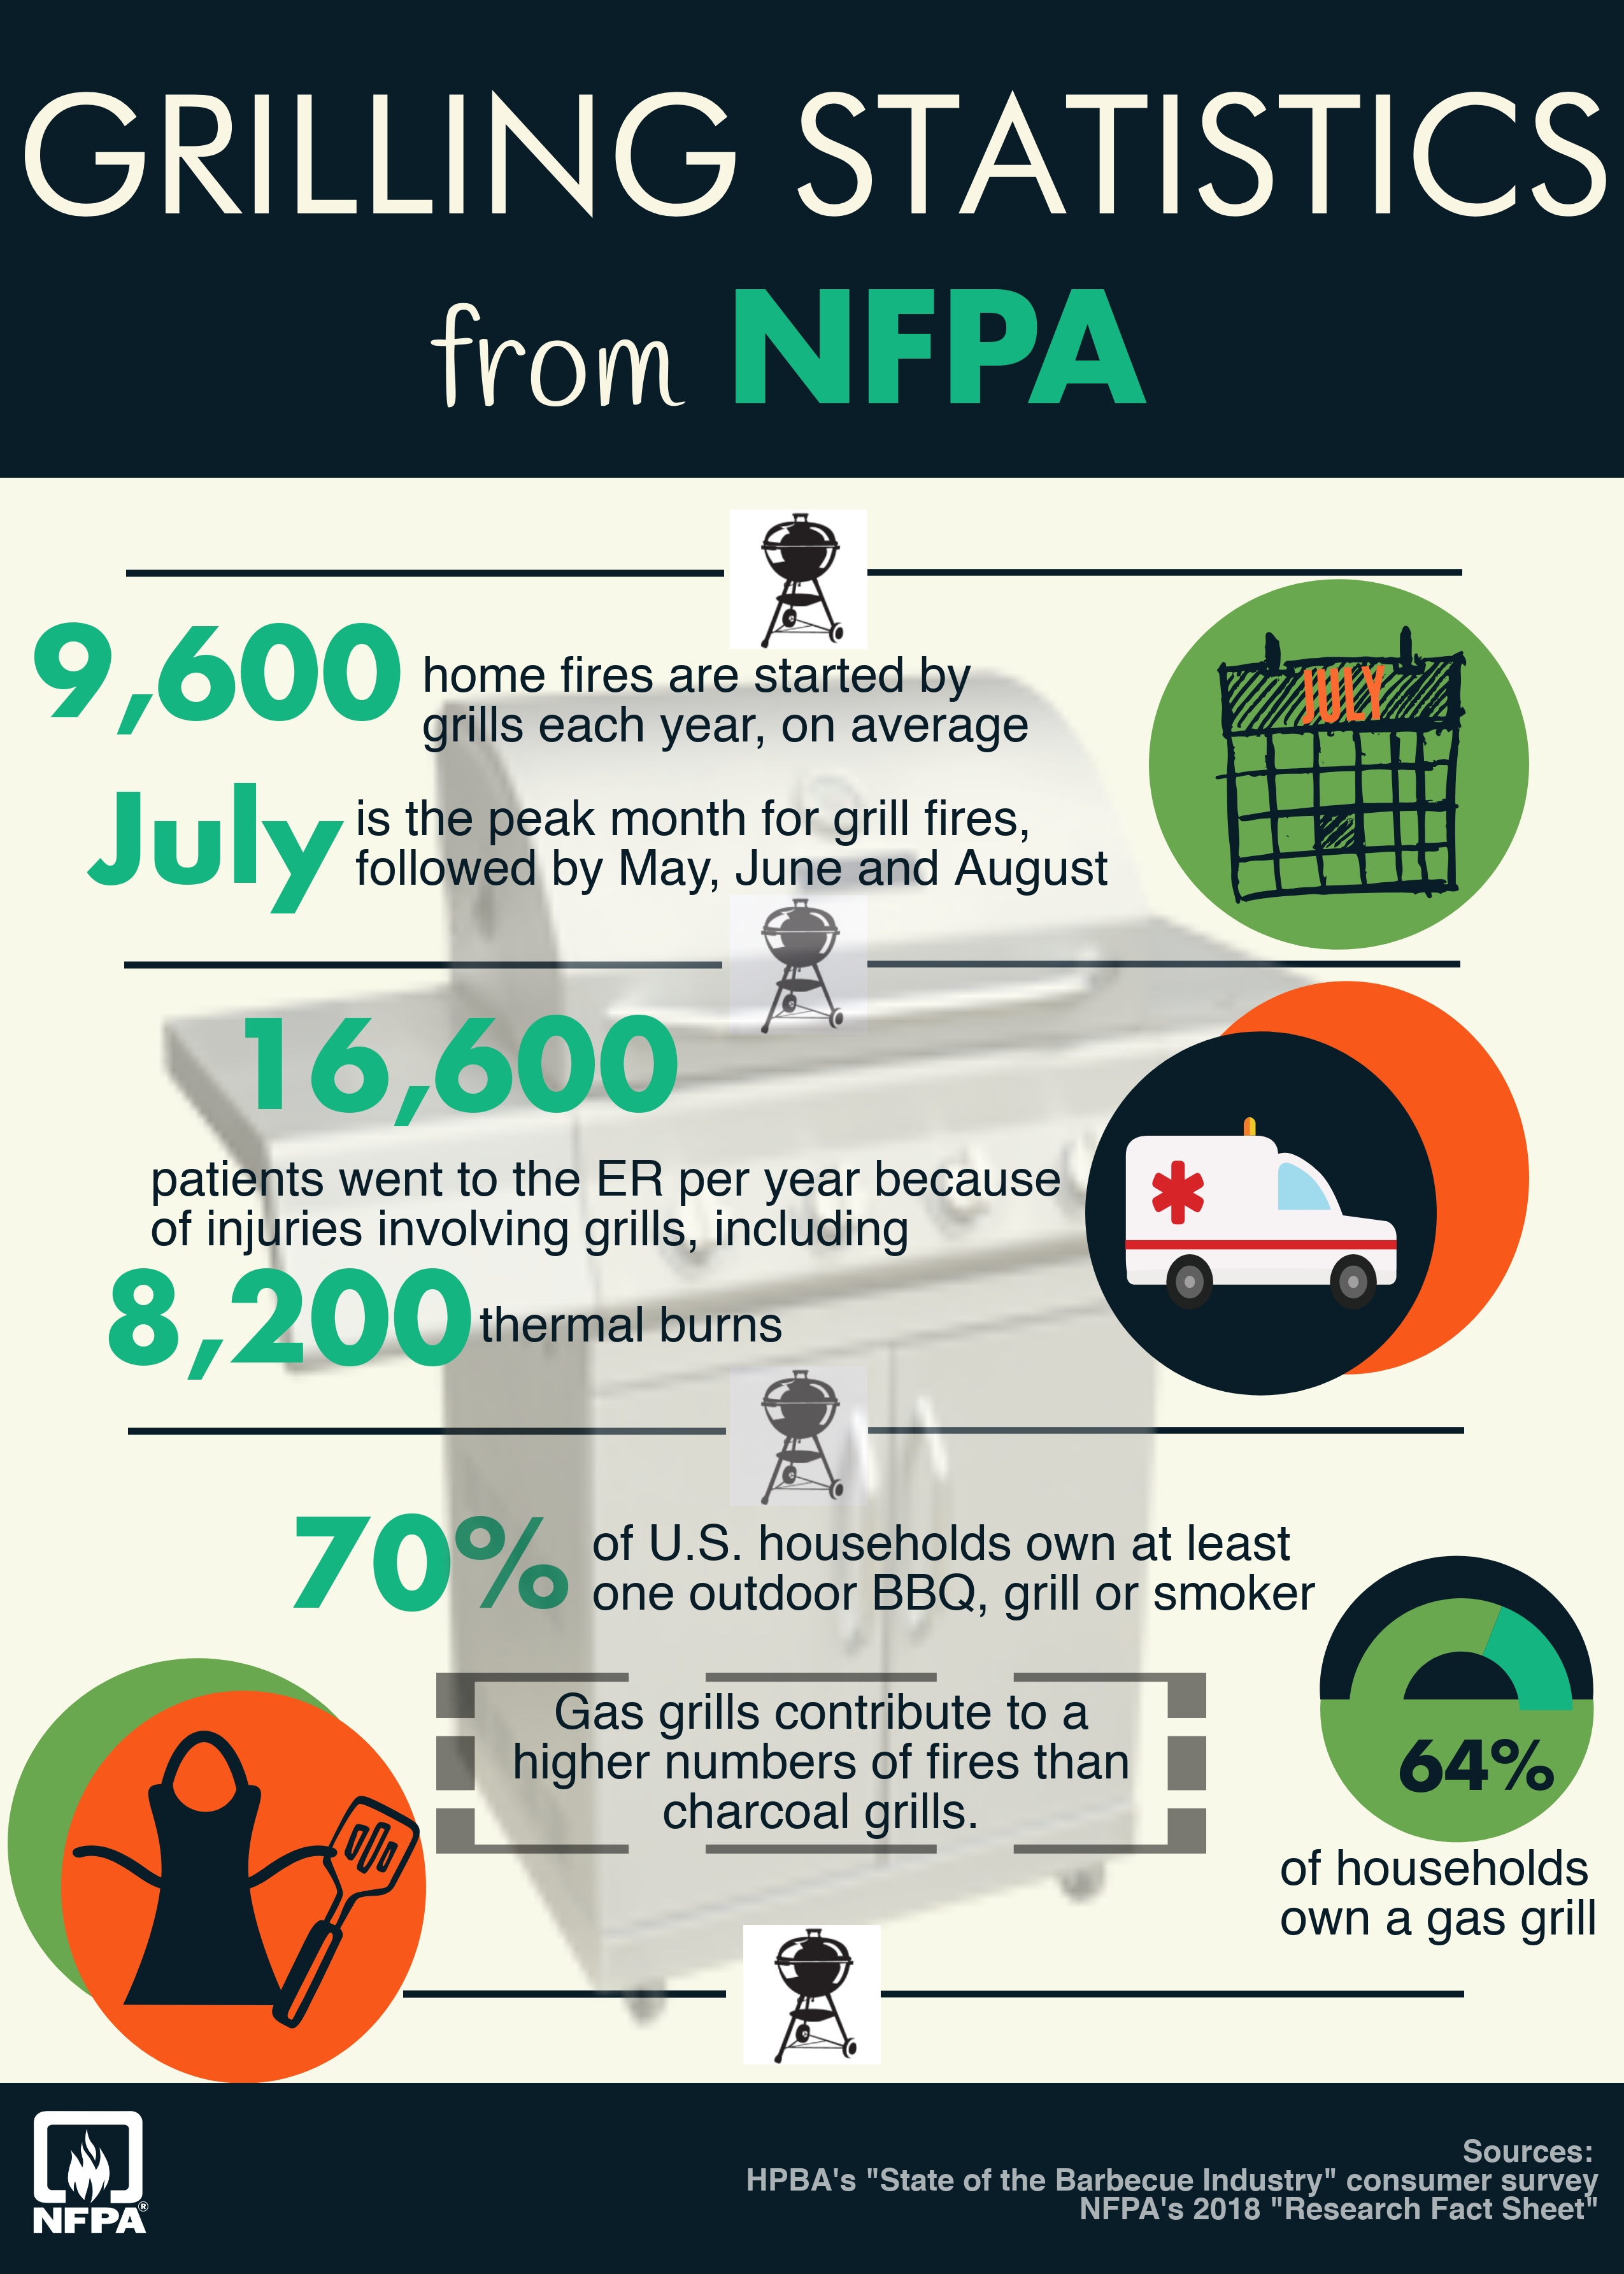 Grilling statistics from NFPA - Infographic